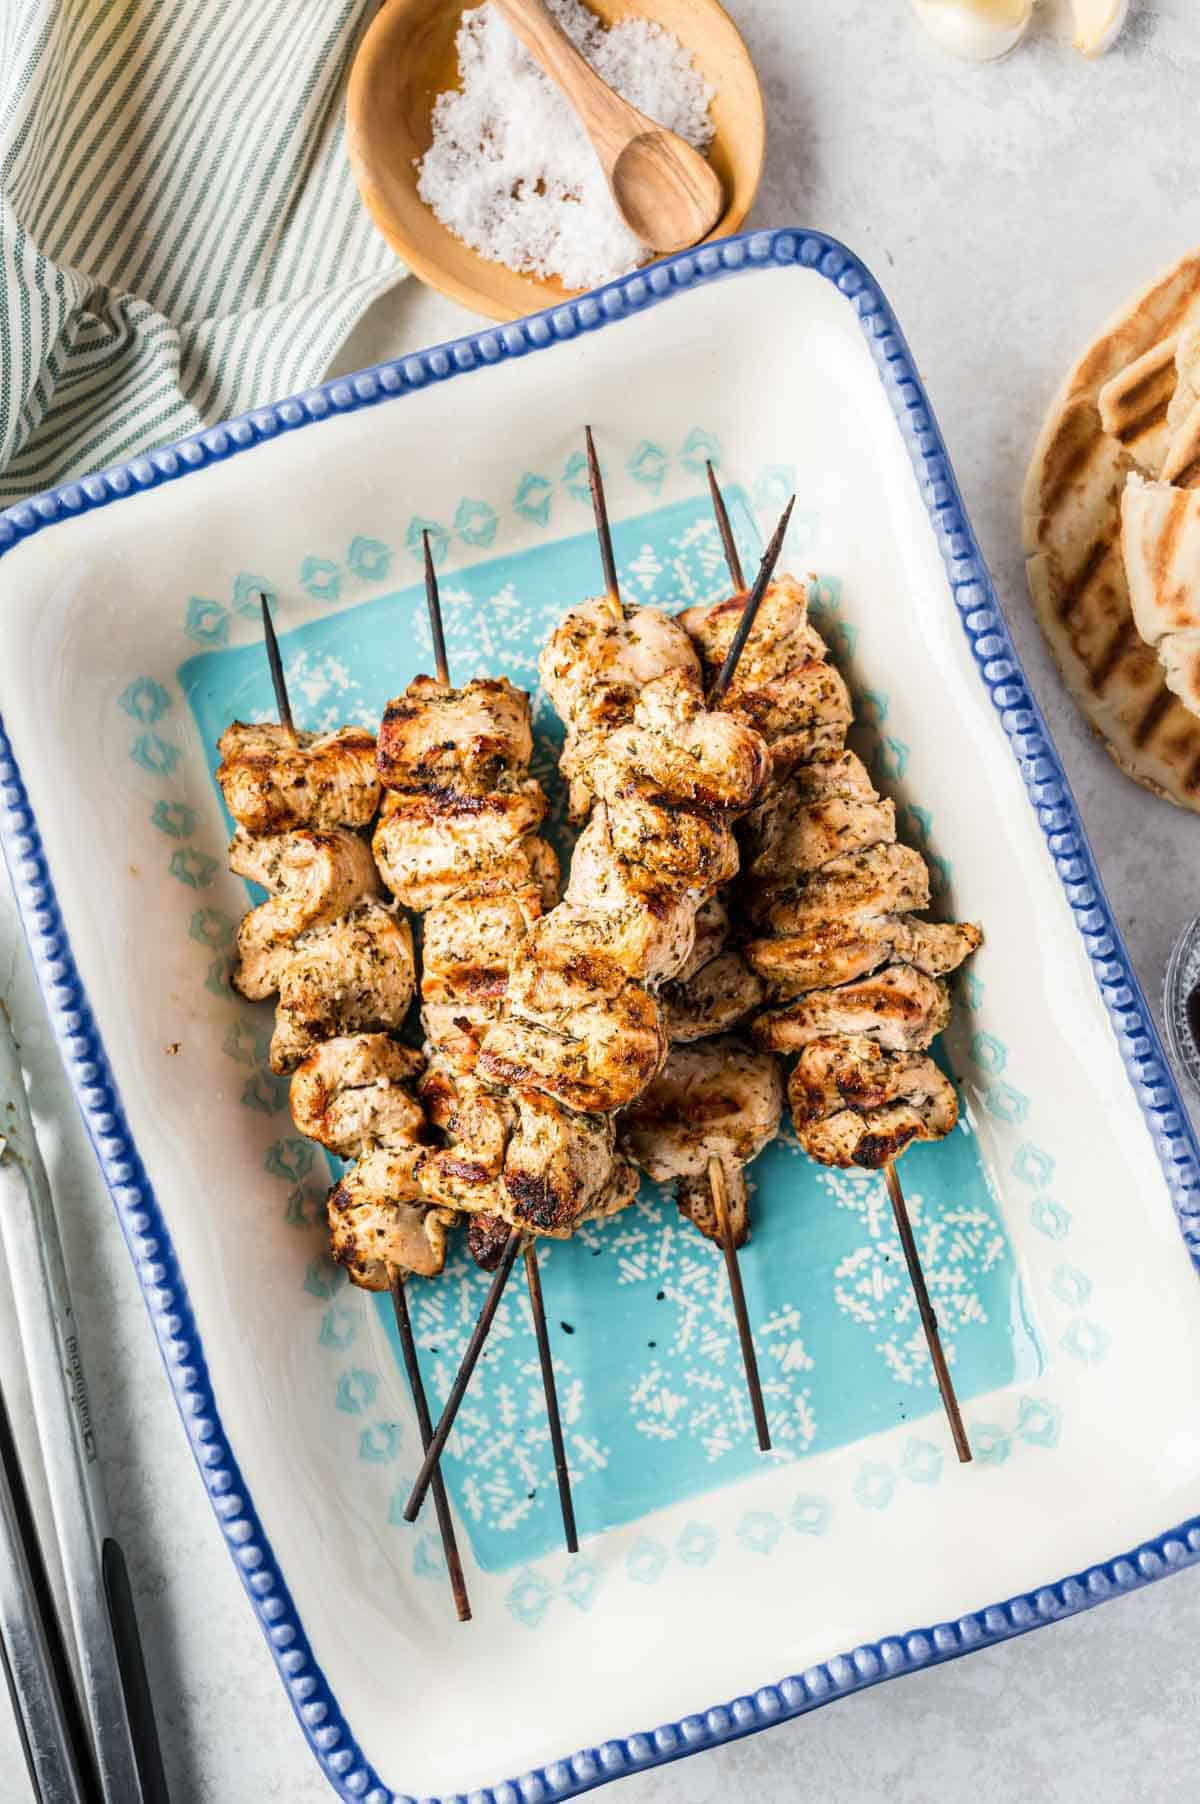 Freshly Grilled Chicken Souvlaki Beside a Kitchen Towen and a Small Dish of Salt